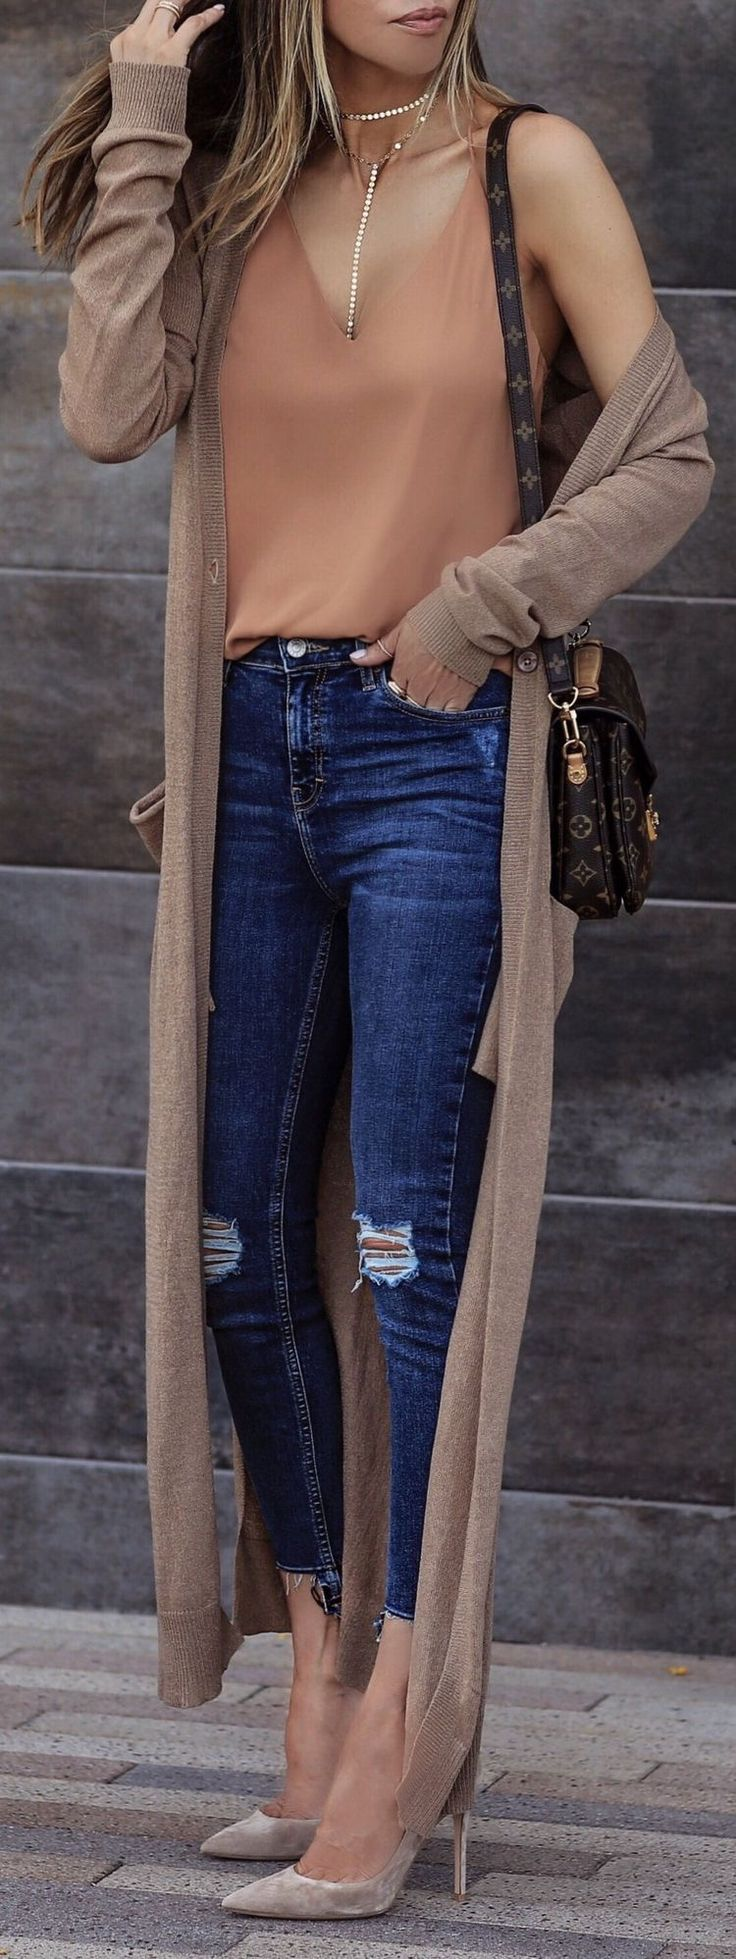 Find More at => http://feedproxy.google.com/~r/amazingoutfits/~3/-jAvg8omKzM/AmazingOutfits.page